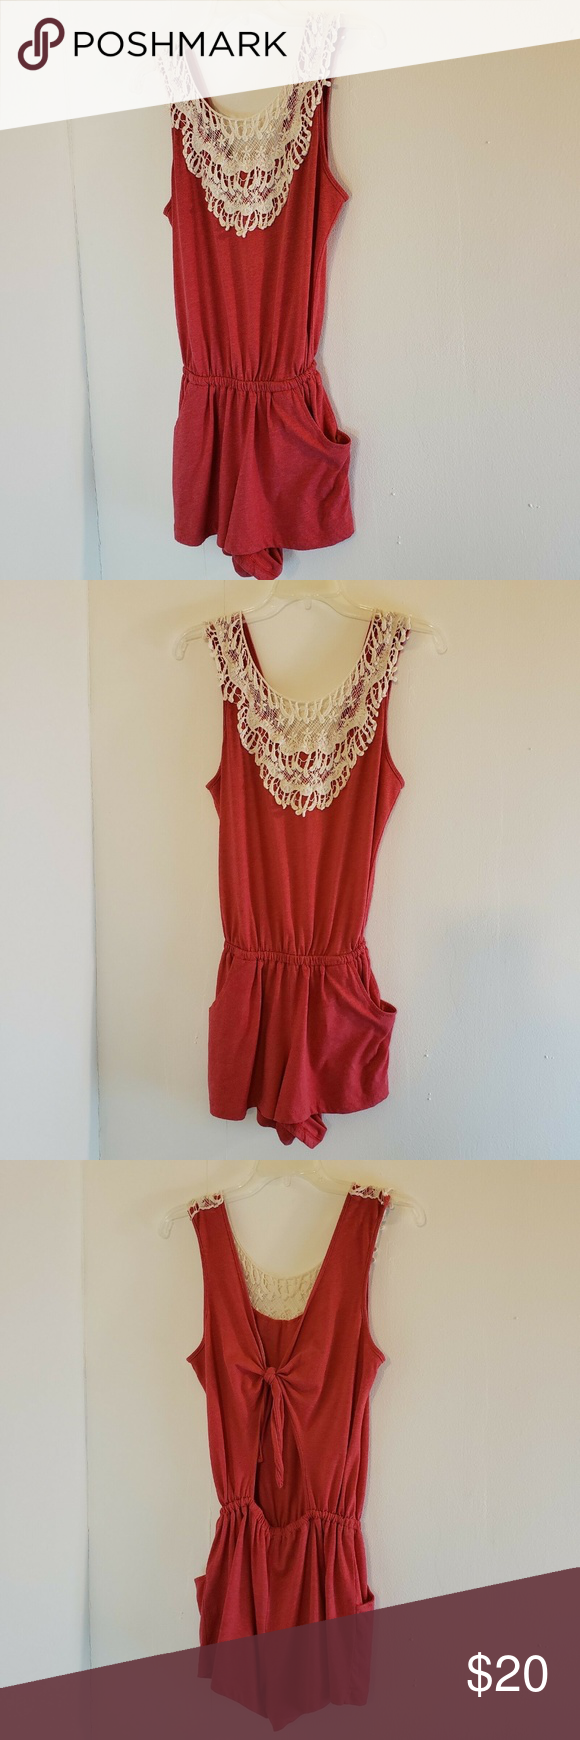 9bc34d923178 Cut   Sew Los Angeles Romper Red Open Back Crochet Cut   Sew Los Angeles  Romper Red Open Back Crochet Neckline Size Small Pockets Cut   Sew Pants  Jumpsuits ...